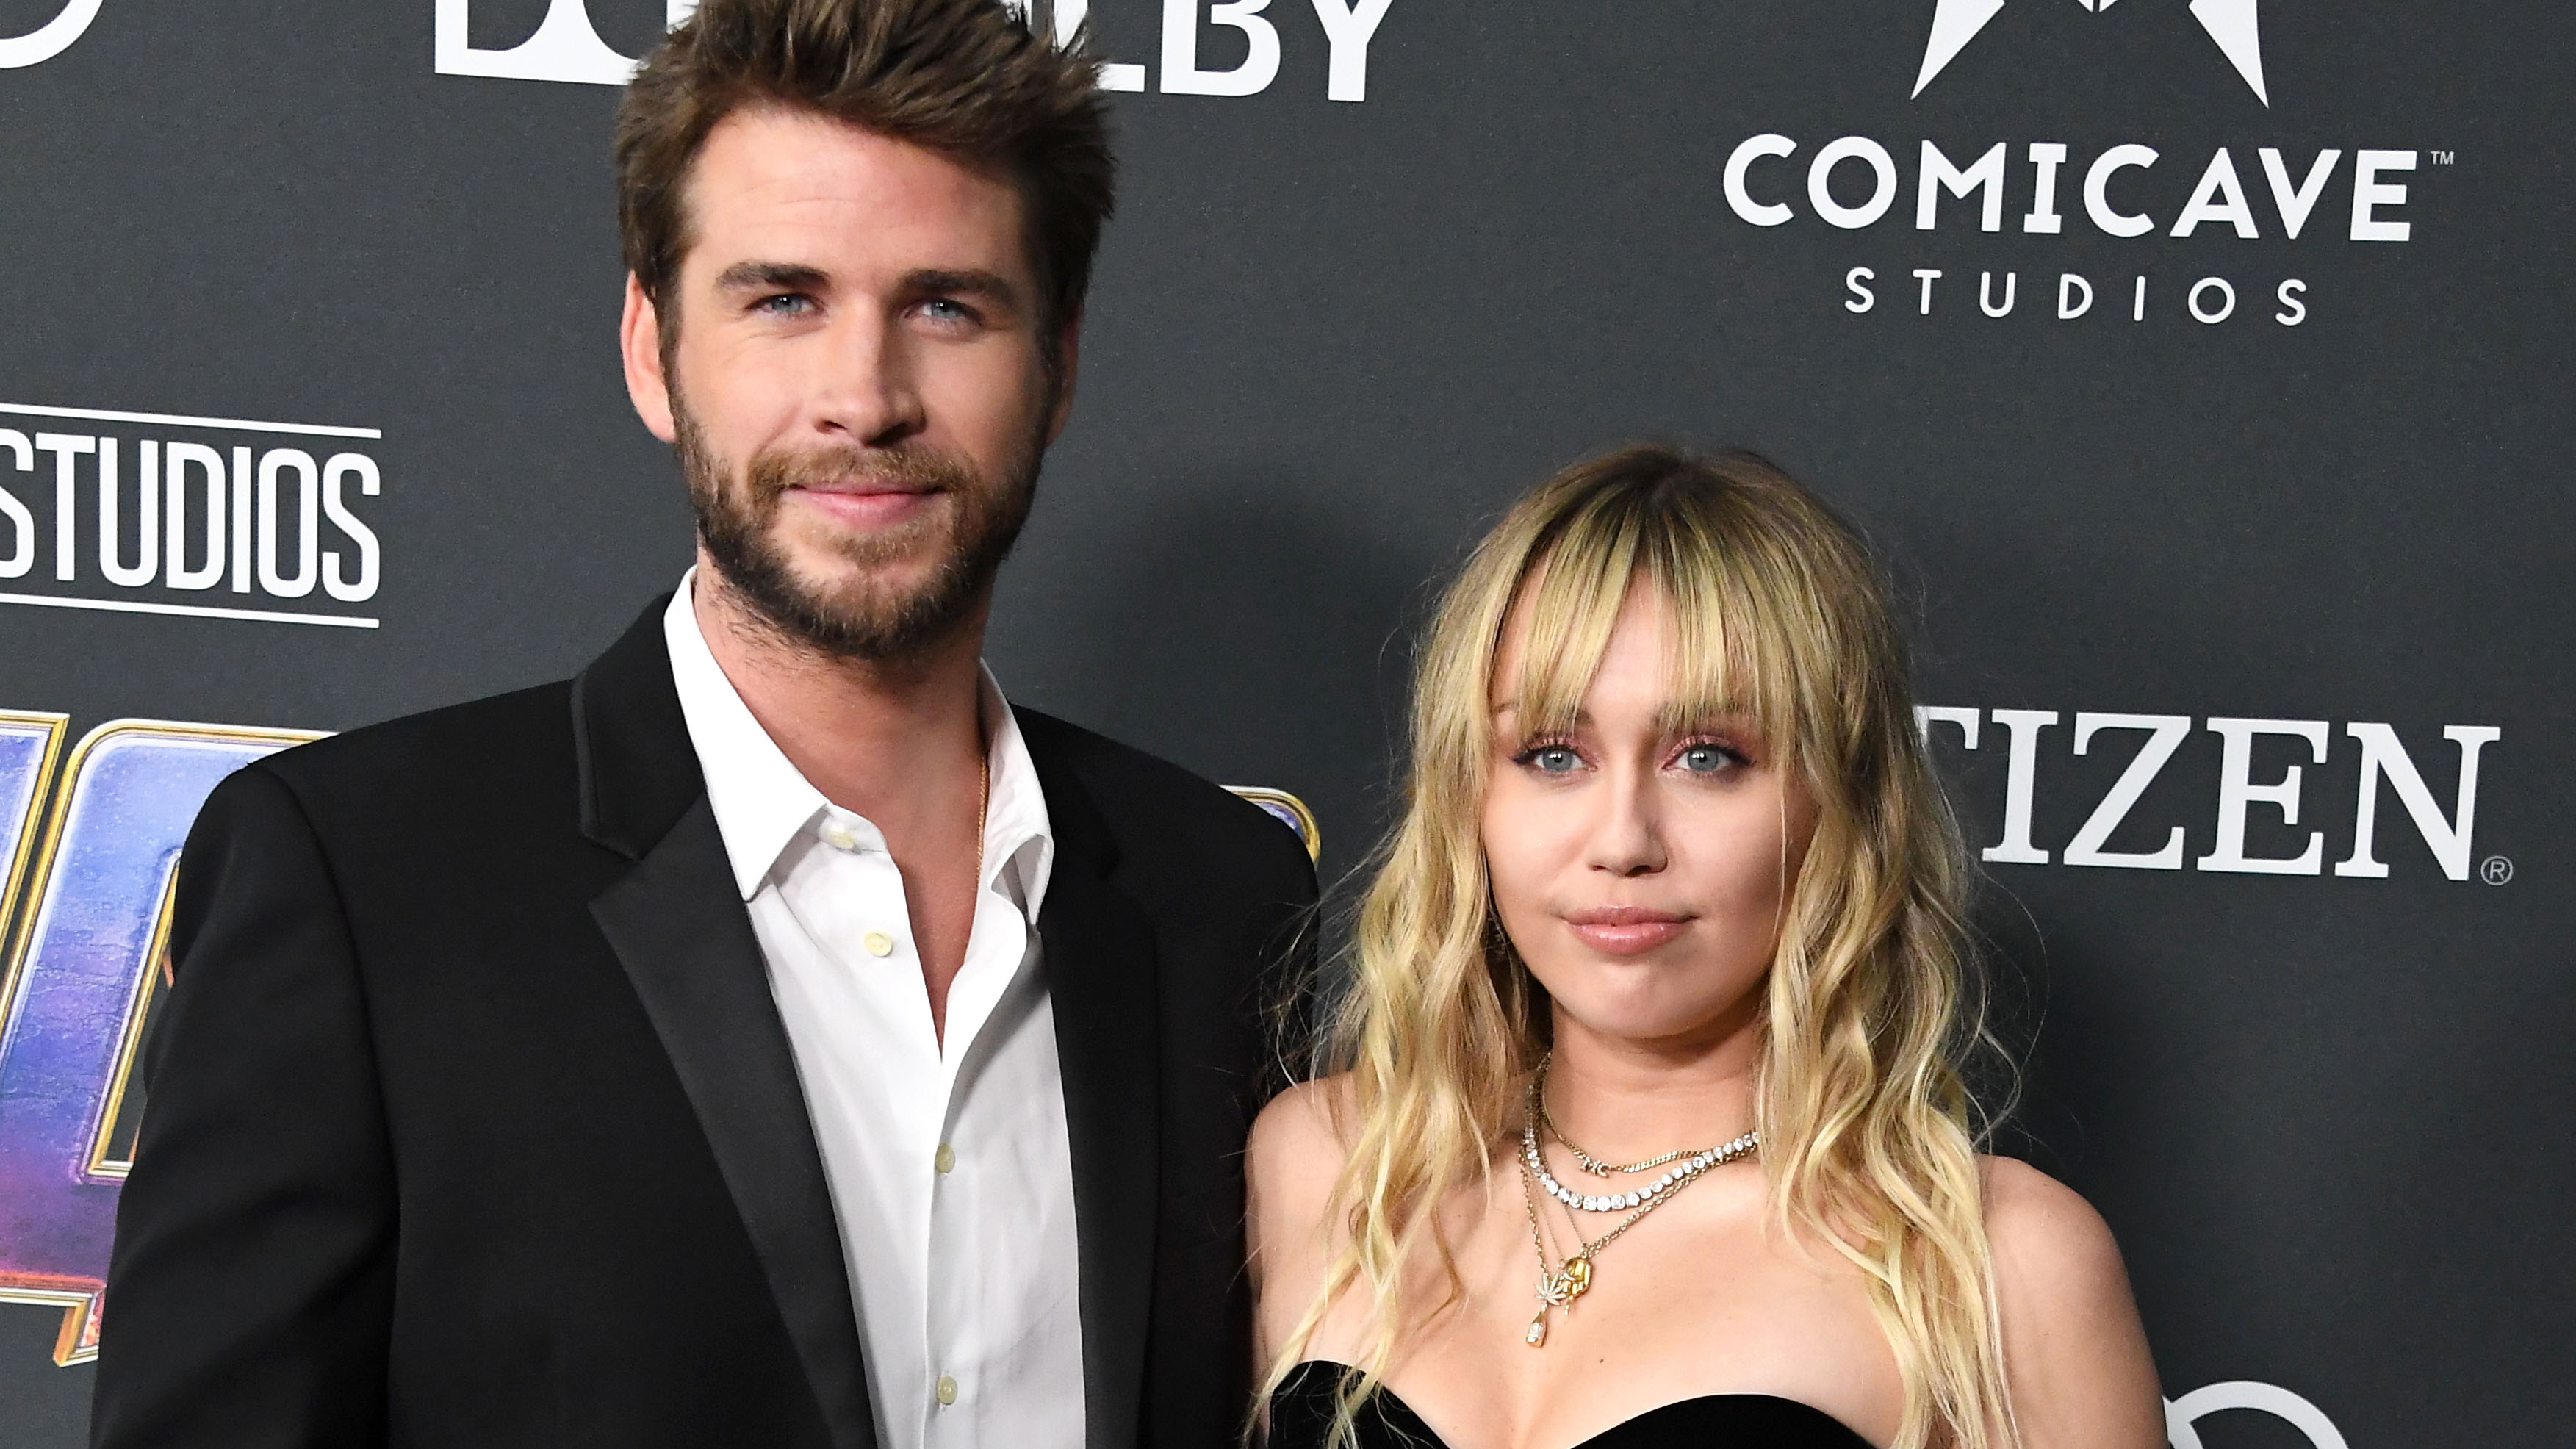 Liam Hemsworth 'has a low opinion of' Miley Cyrus after their split: report – Fox News